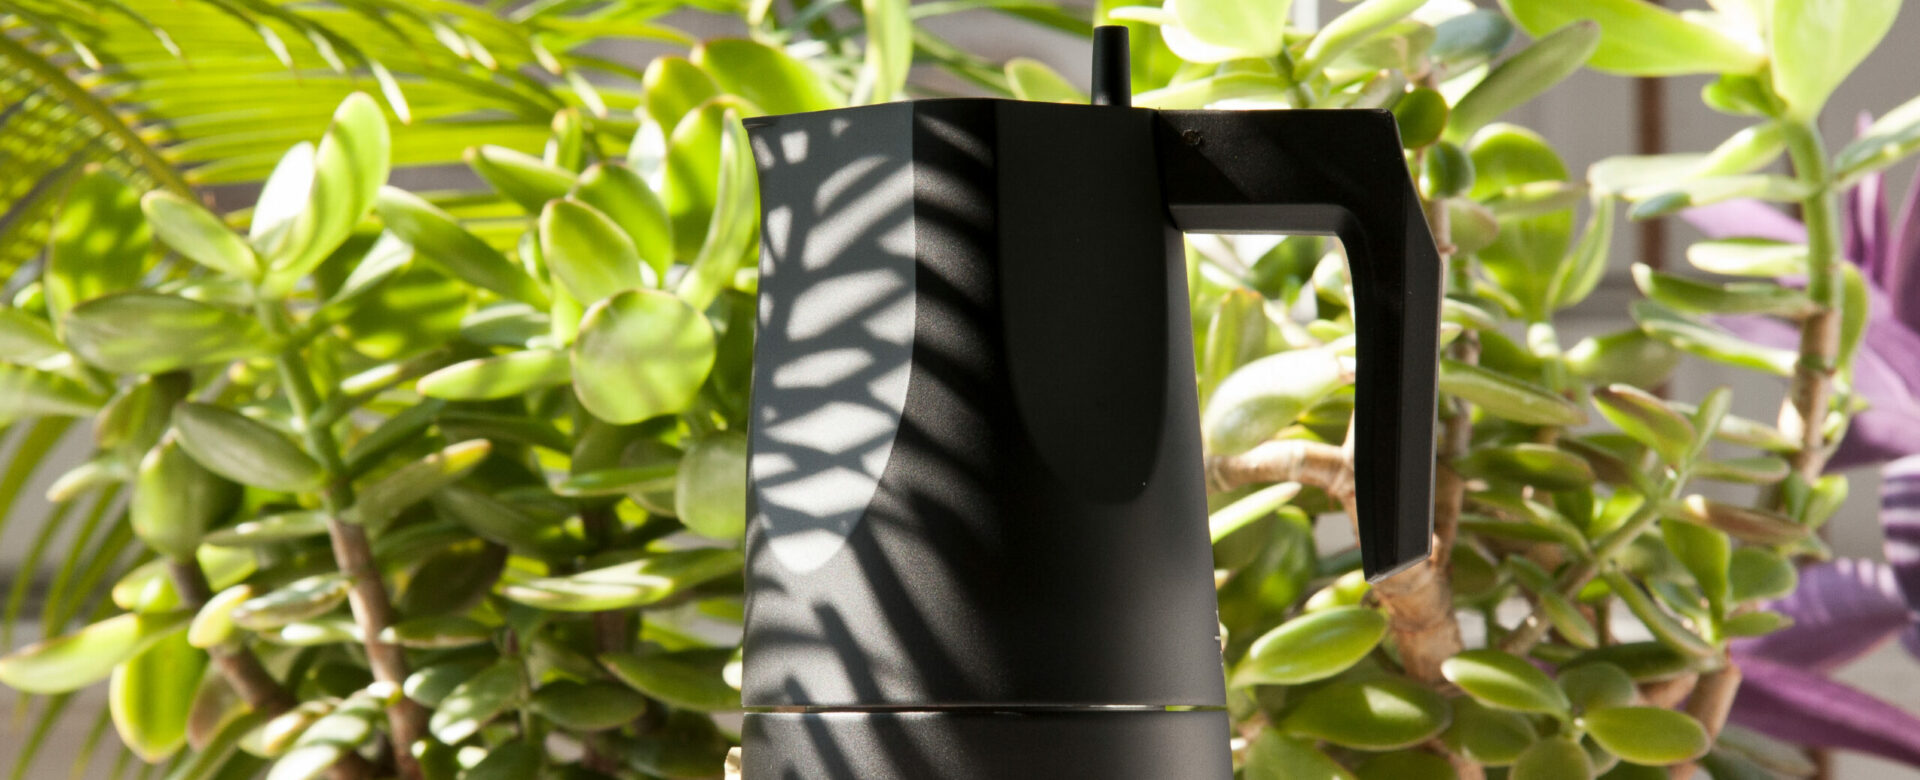 Left side photo of Ossidiana Expresso Coffee maker for Alessi. The model presented in the picture is in aluminium casting painted in black with handle in thermoplastic black resin, showing the details of its form inspired in the stone arrowheads handmade by natives. The background is filled with a blurred plant.